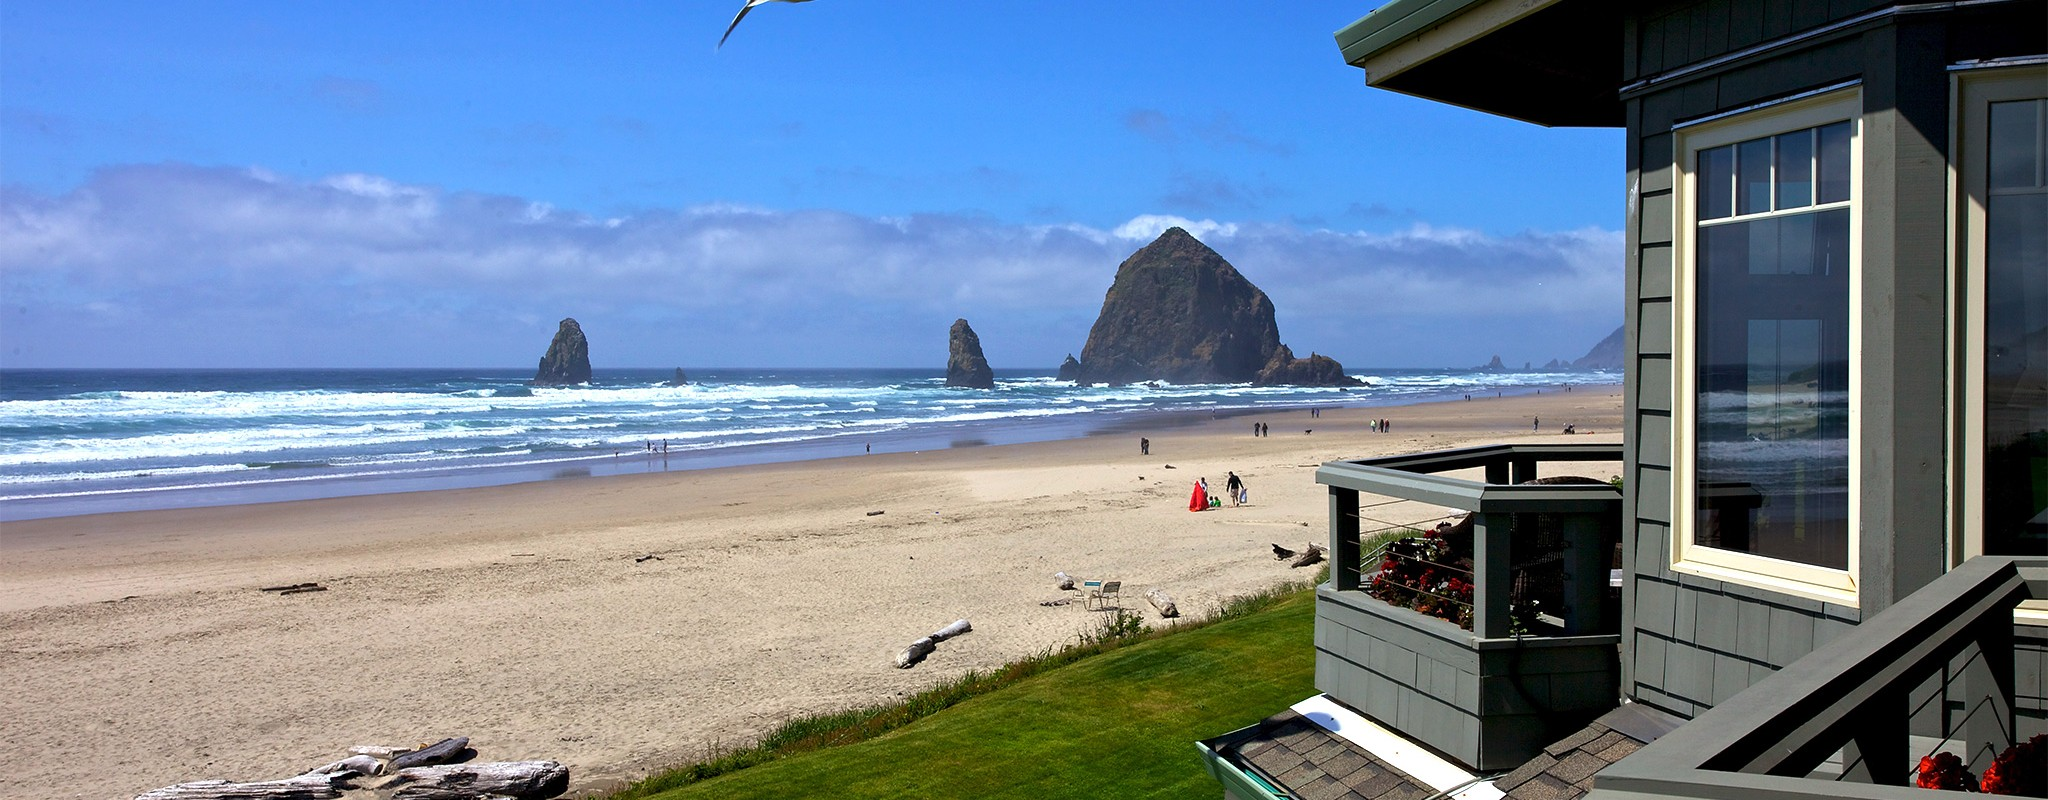 Cannon-Beach-oceanfront-hotel-Stephanie-Inn-hor010-2048x800